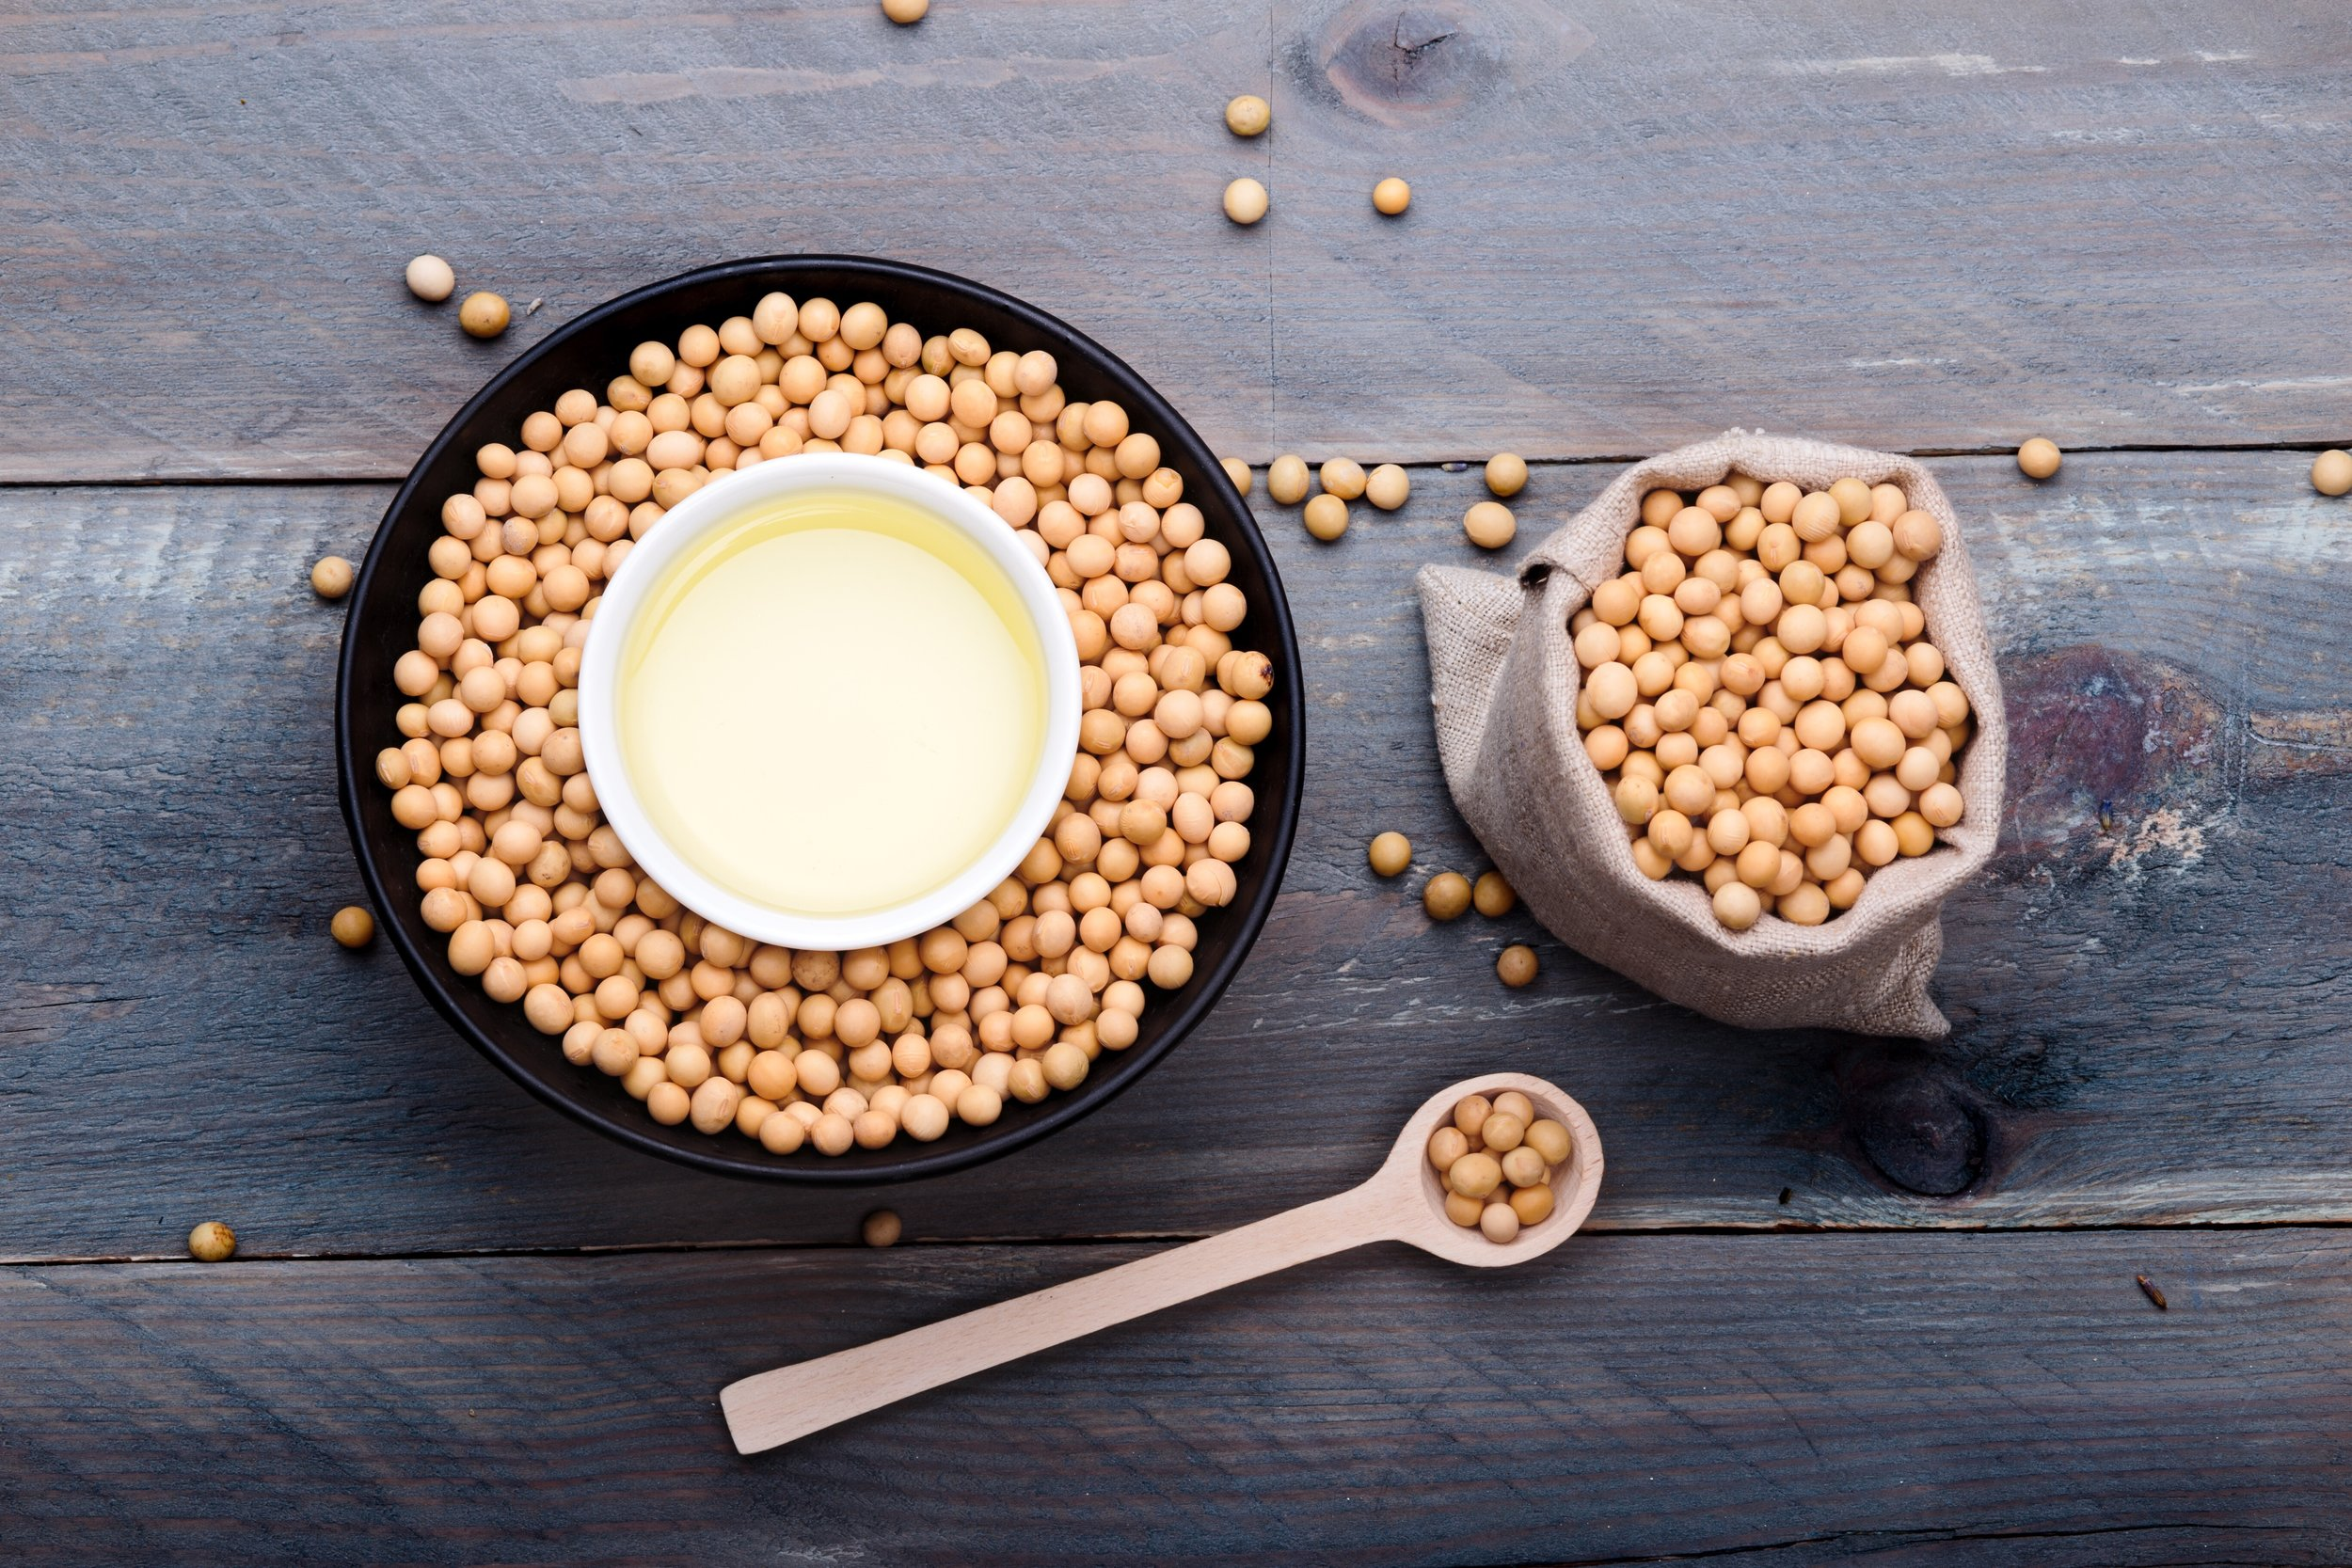 soy-beans-and-soy-oil-in-bowls-on-wooden-table_t20_NQajrB.jpg